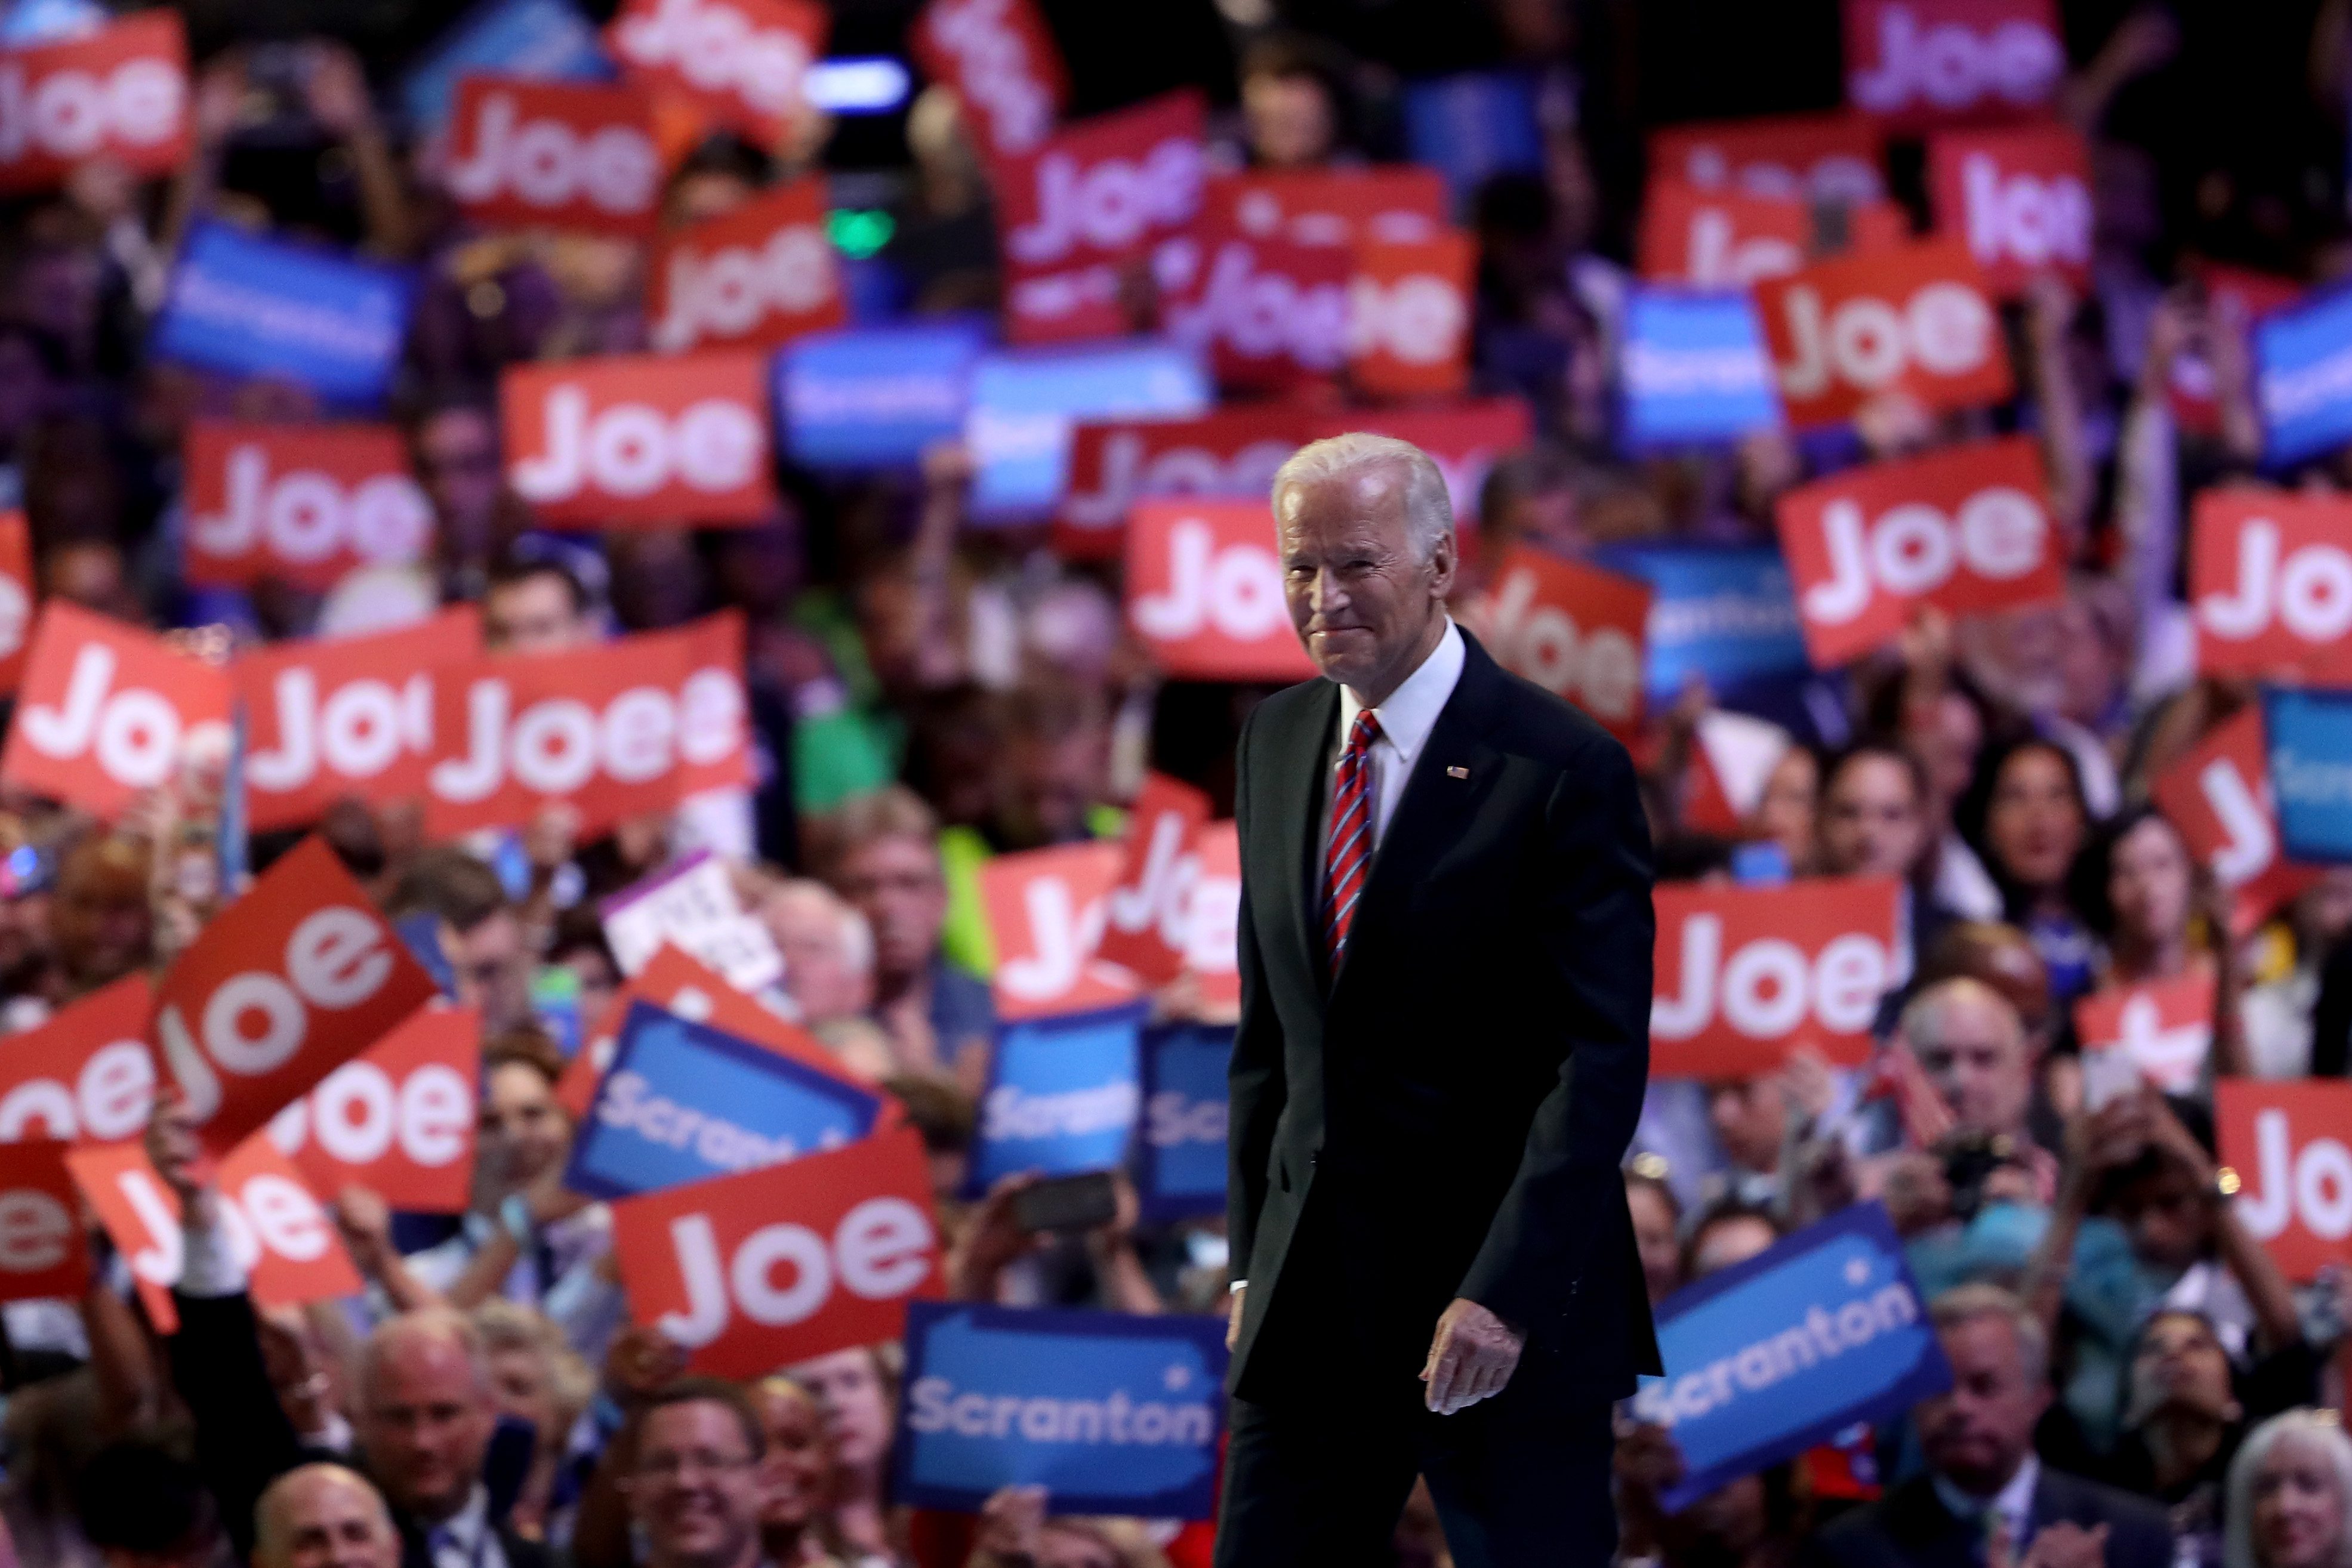 PHILADELPHIA, PA - JULY 27: US Vice President Joe Biden acknowledges the crowd after delivering remarks on the third day of the Democratic National Convention at the Wells Fargo Center, July 27, 2016 in Philadelphia, Pennsylvania. Democratic presidential candidate Hillary Clinton received the number of votes needed to secure the party's nomination. An estimated 50,000 people are expected in Philadelphia, including hundreds of protesters and members of the media. The four-day Democratic National Convention kicked off July 25. (Photo by Justin Sullivan/Getty Images)